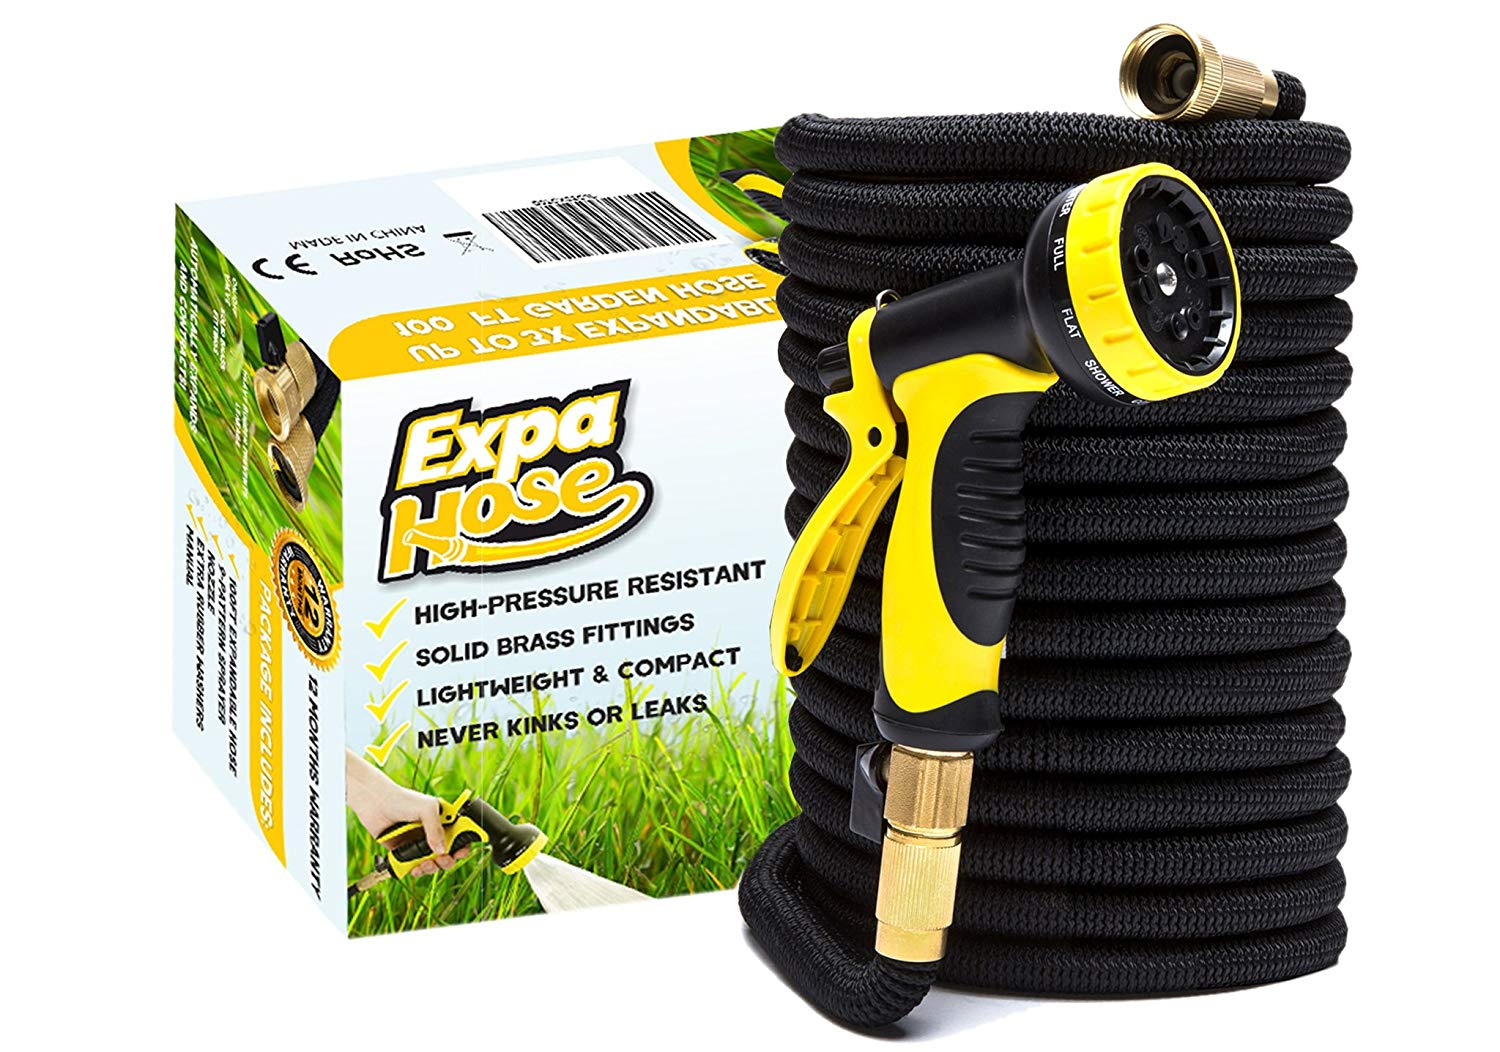 ExpaHose 100ft Expandable Garden Hose with 9-Pattern Sprayer Nozzle | Gardening and Outdoor Lawn Care Tools | Lightweight, Flexible, Kink-Free | 3/4 Brass Fittings | Leakproof Latex Core | Warranty